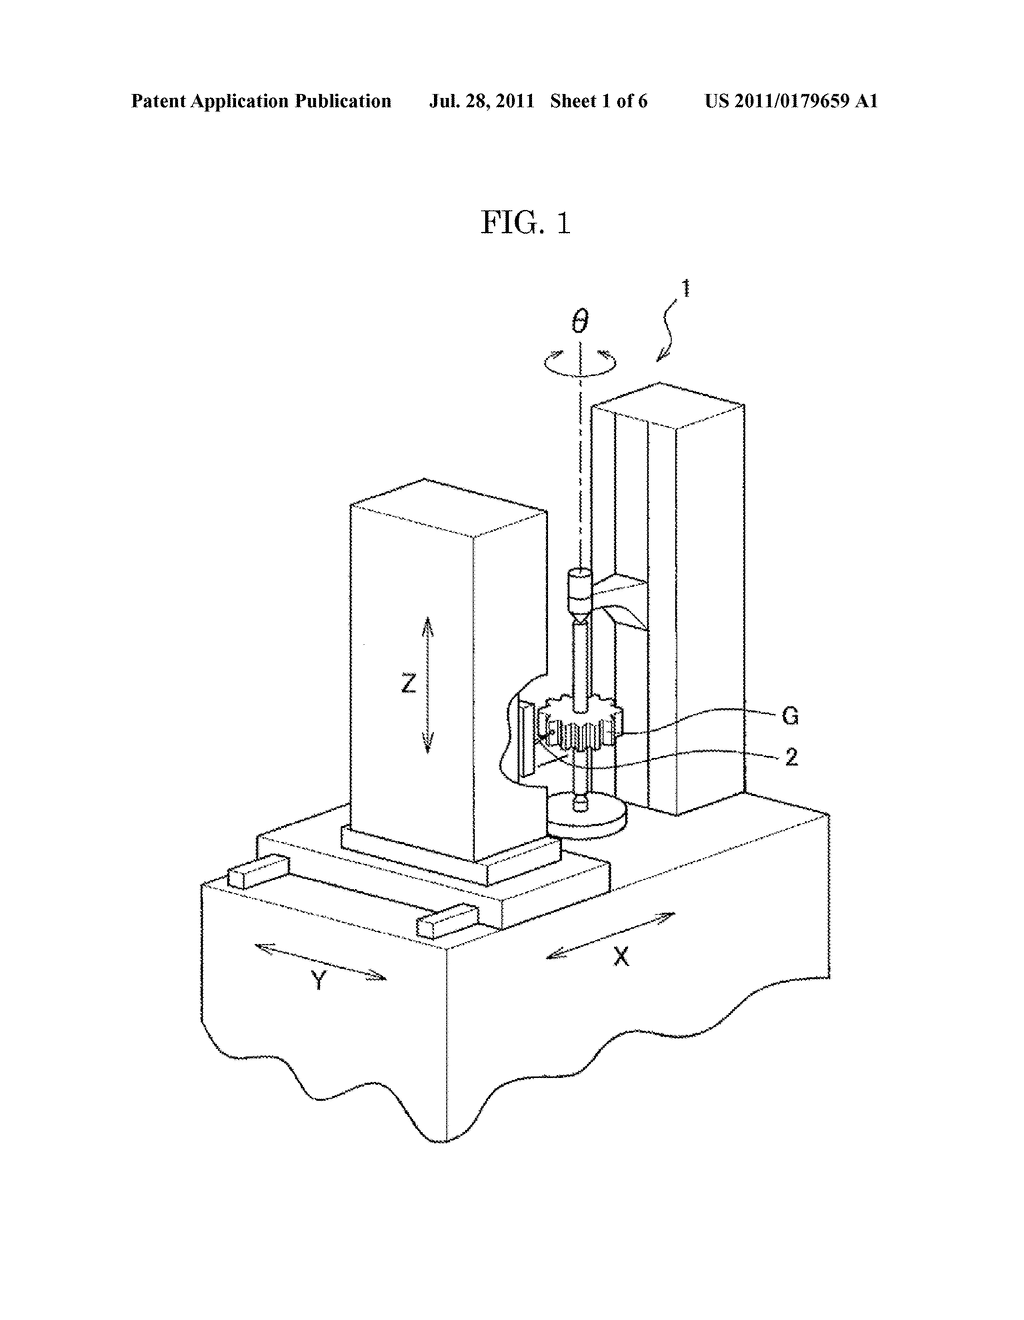 20110179659_02 method of measuring an involute gear tooth profile diagram